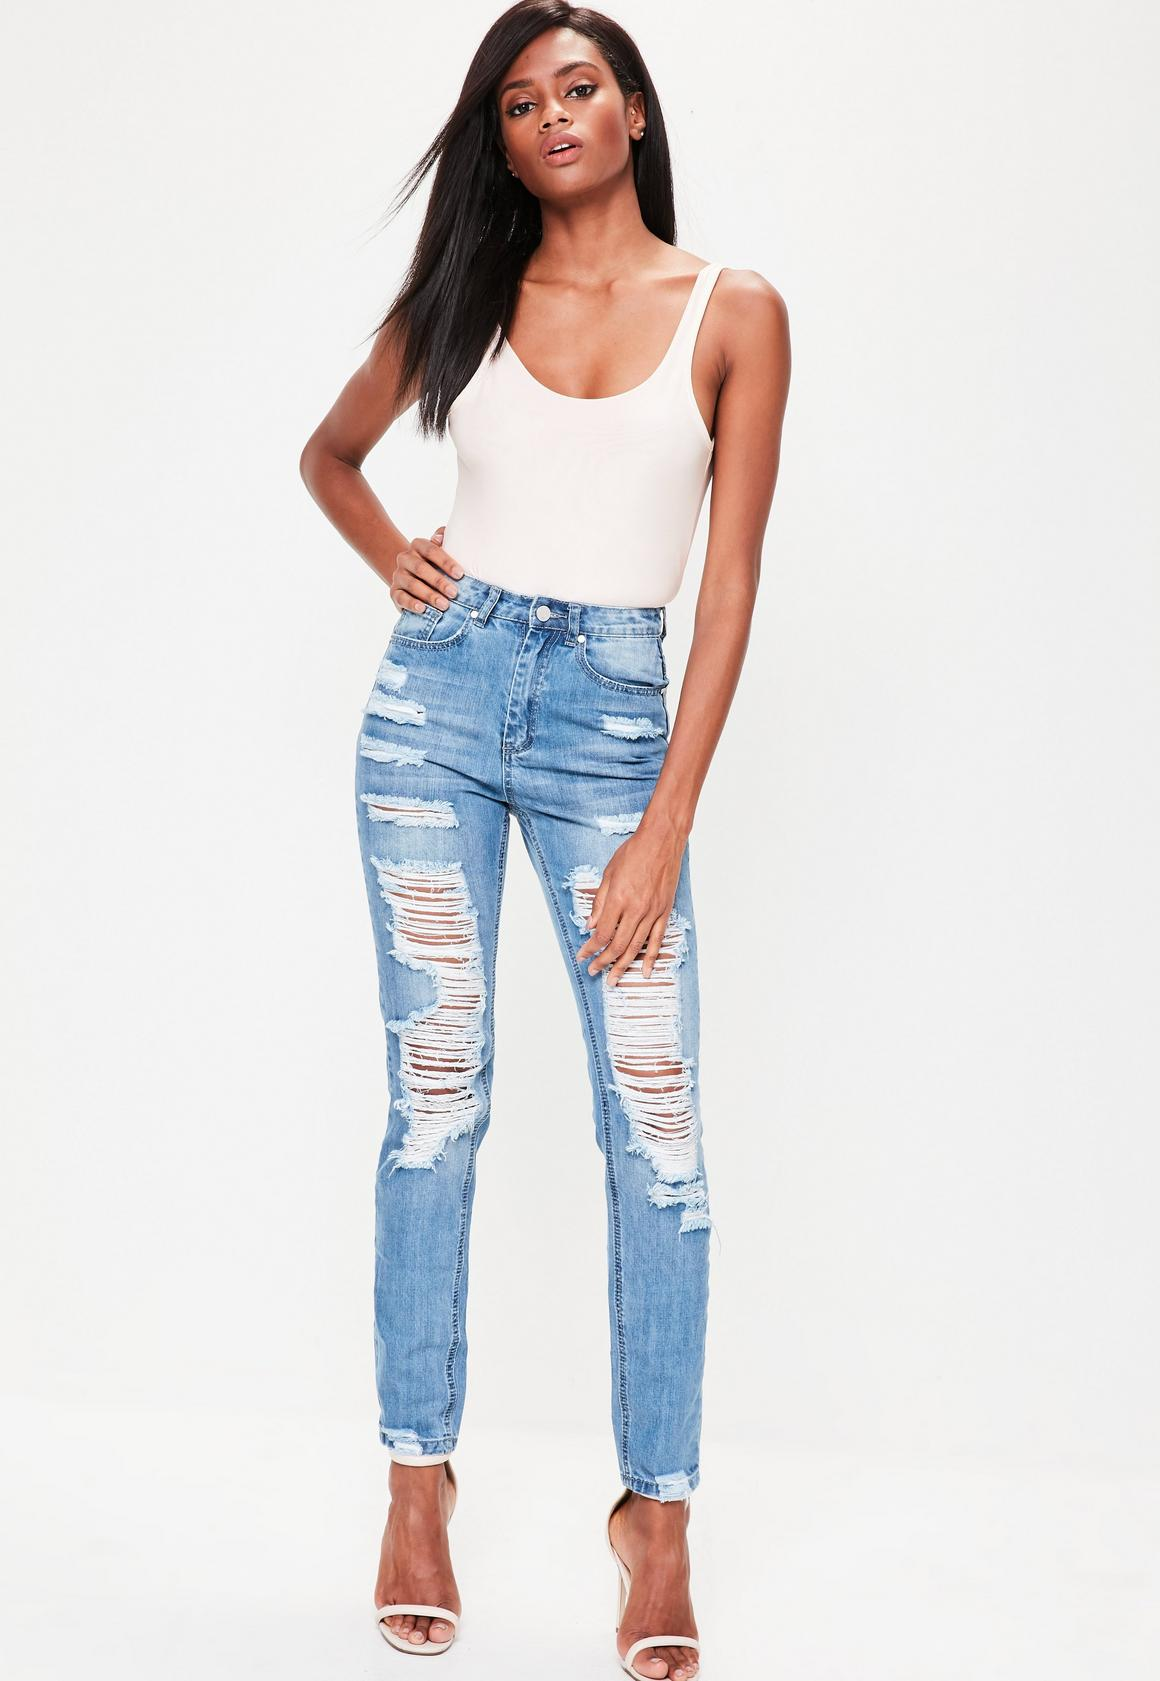 Blue Riot High Rise Ripped Mom Jeans   Missguided